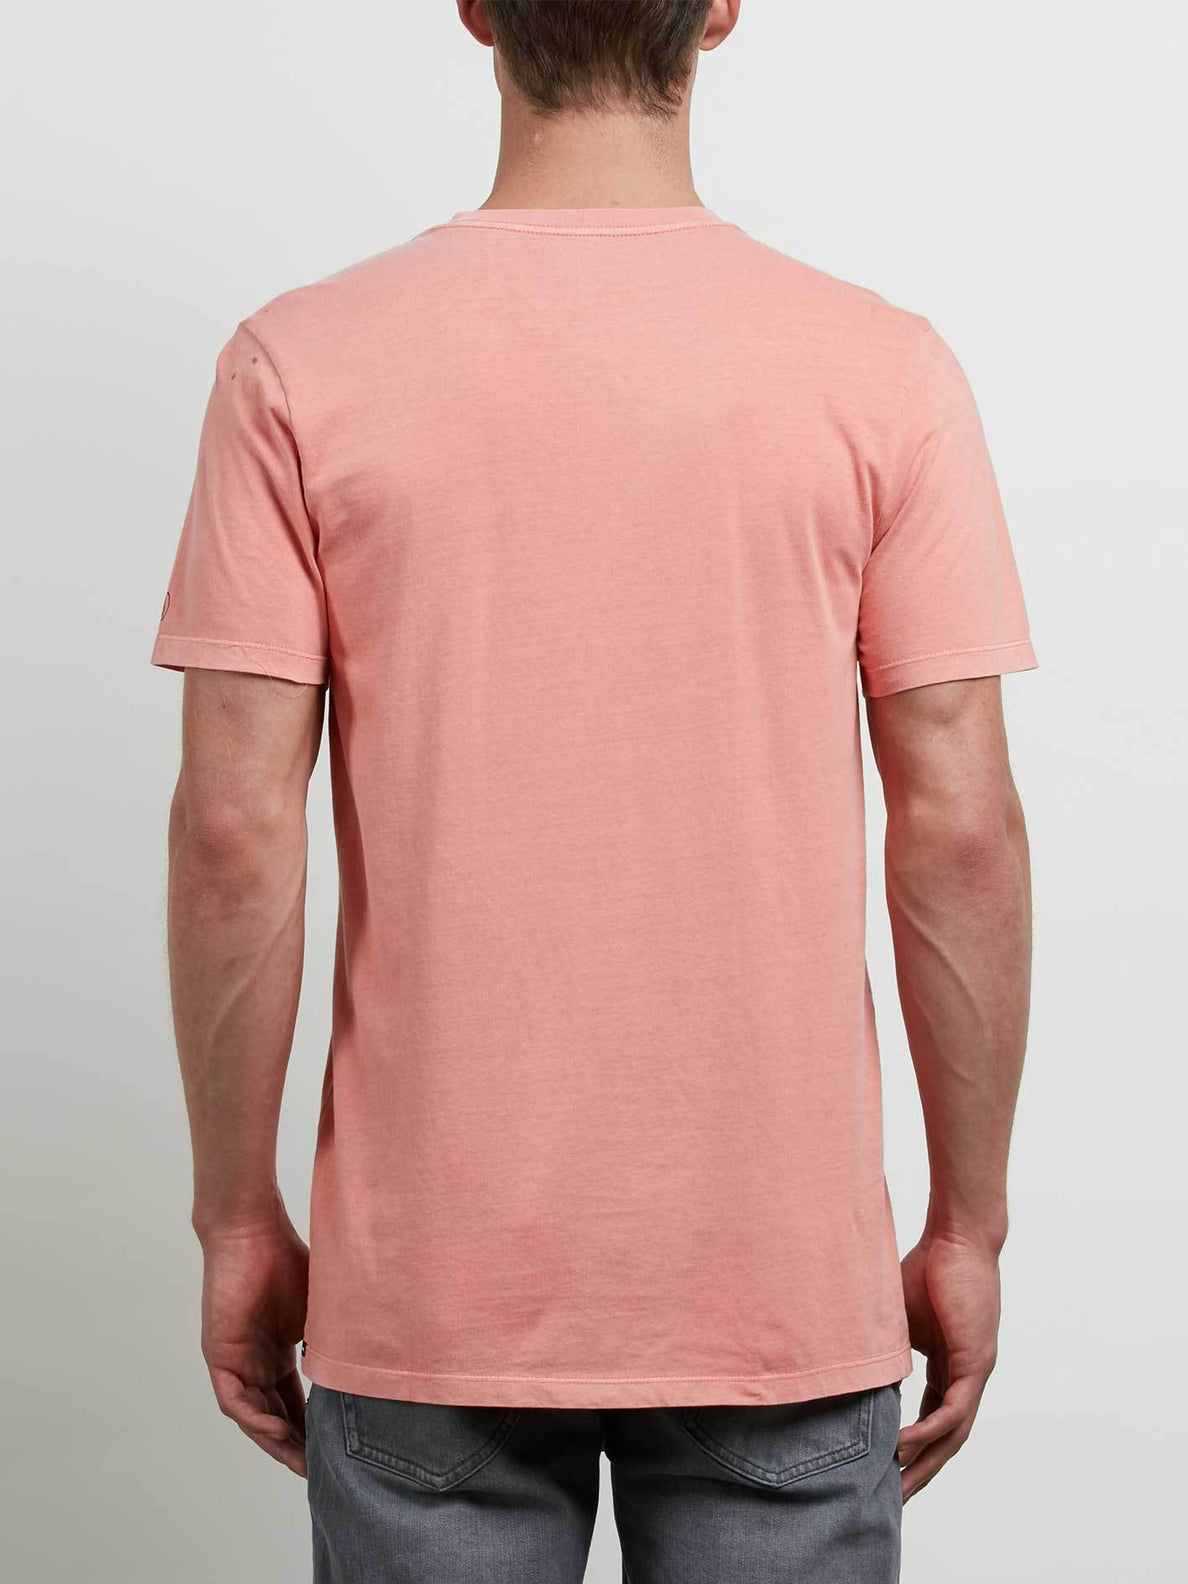 T-Shirt Manches Courtes Pale Wash Solid - Salmon